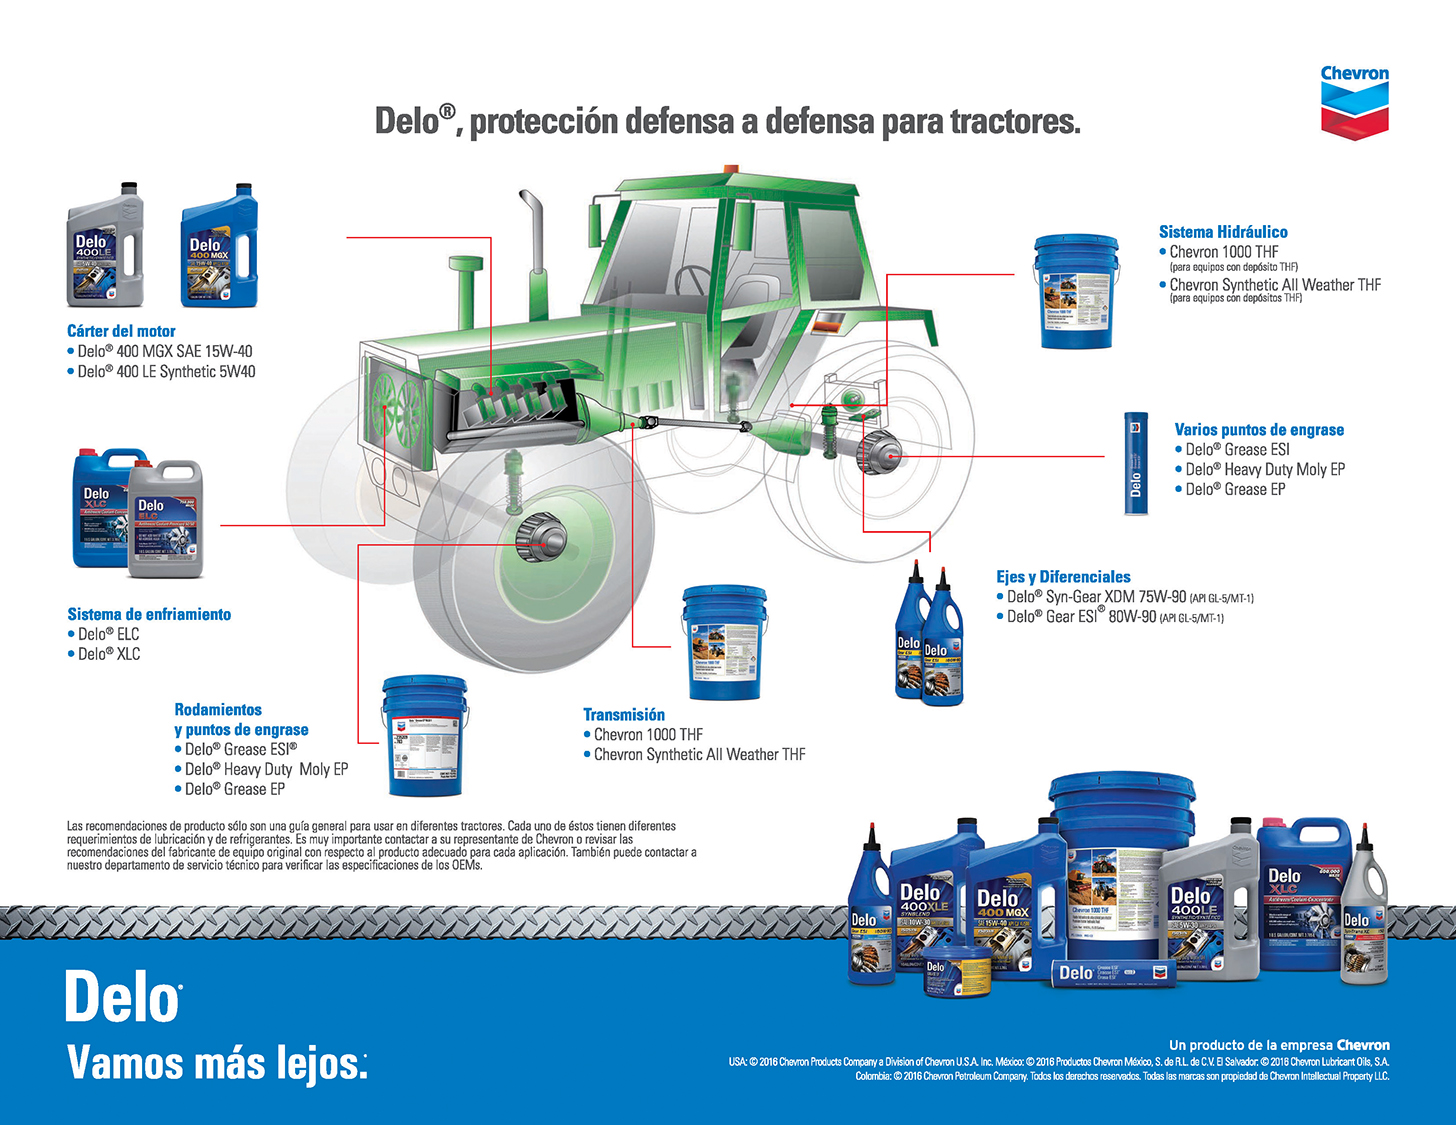 Delo protection for agricultural equipment